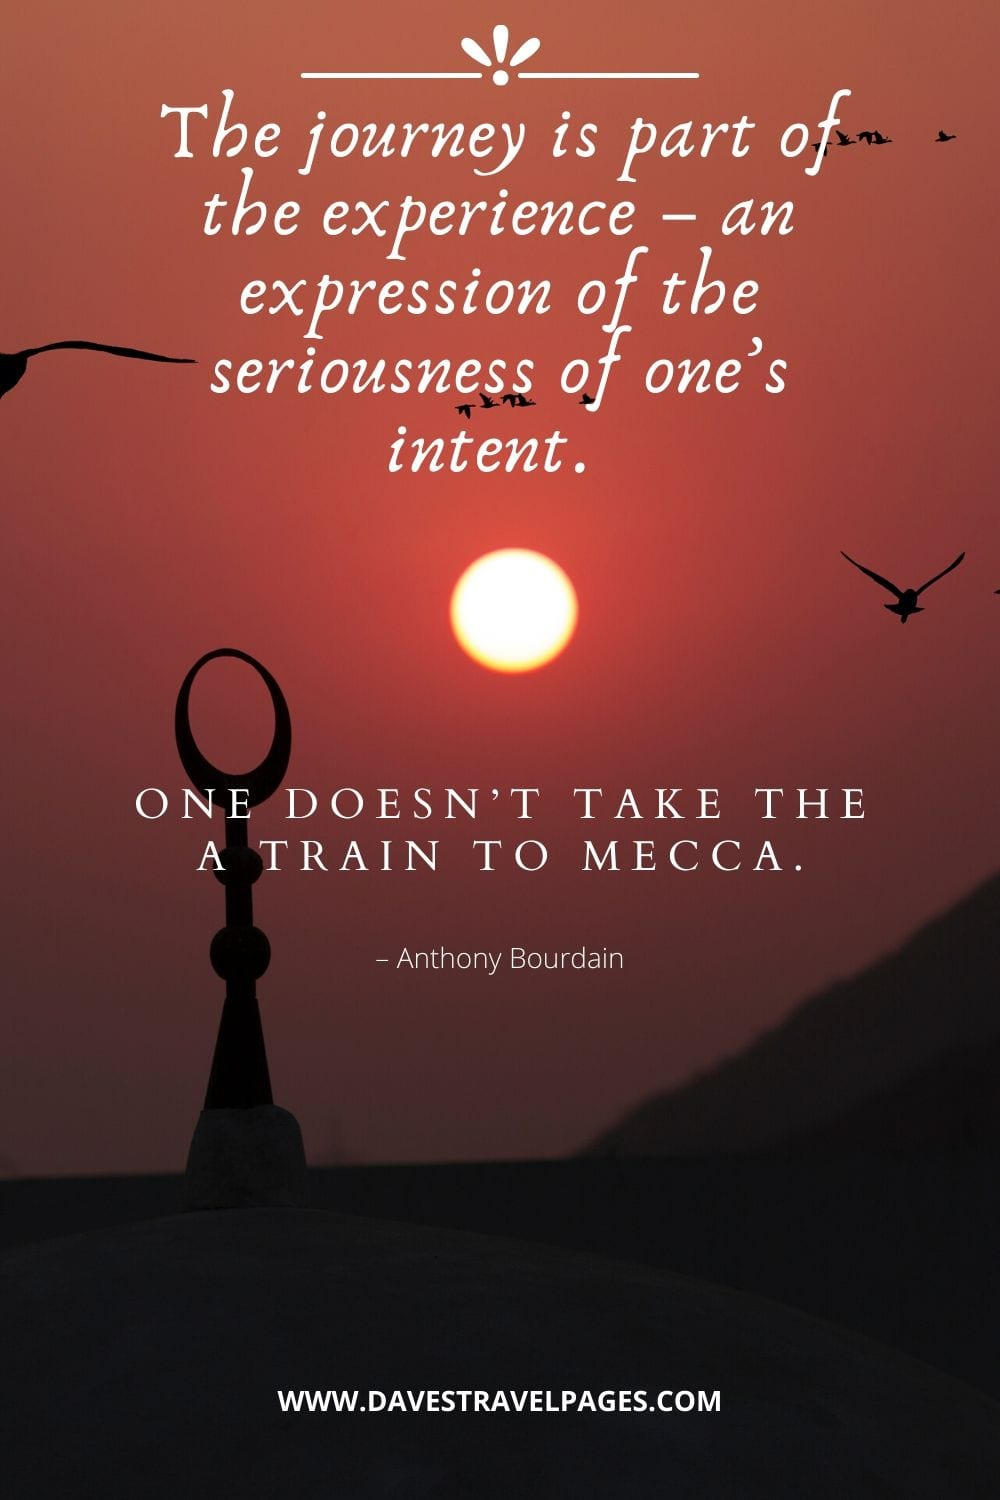 """Journey Quotes: """"The journey is part of the experience – an expression of the seriousness of one's intent. One doesn't take the A train to Mecca."""" – Anthony Bourdain"""